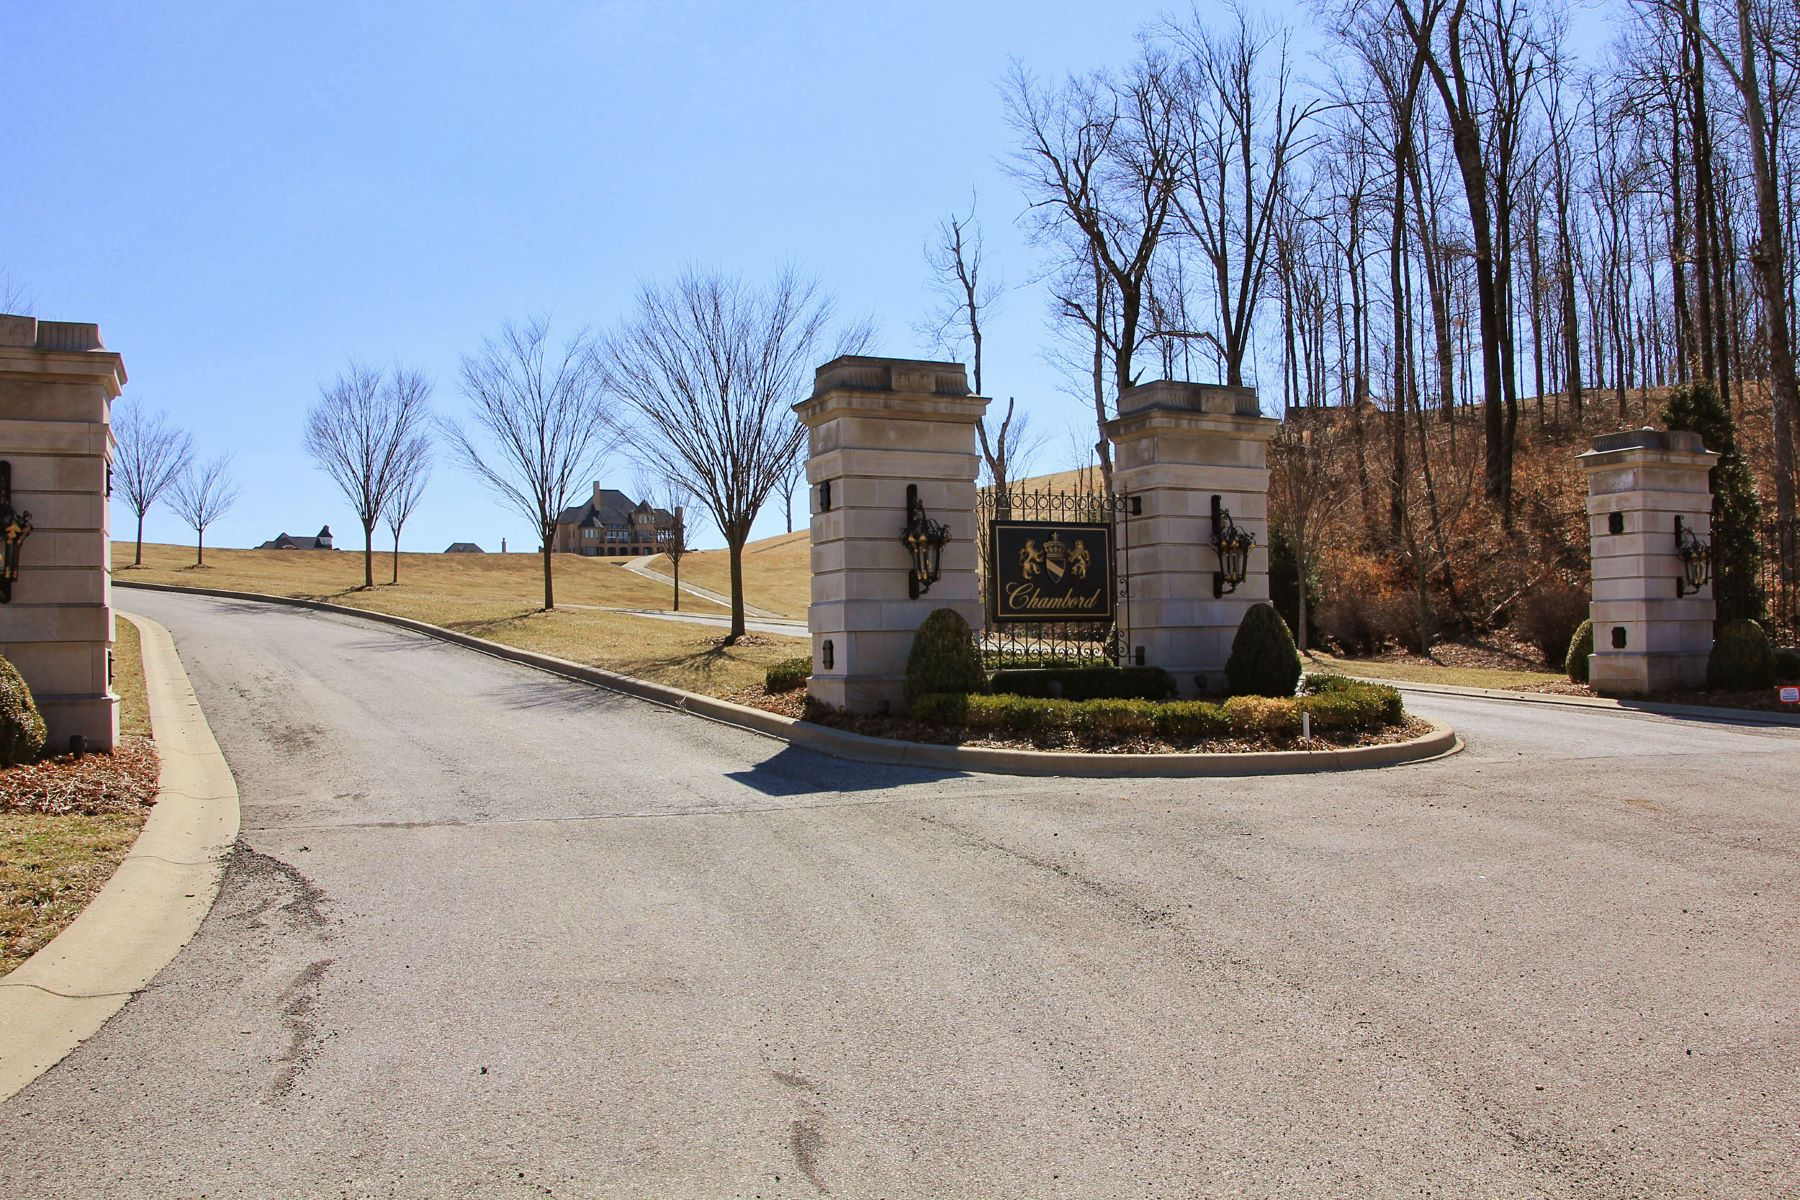 Additional photo for property listing at lot 28 Cote de Chambord  Floyds Knobs, Indiana 47119 United States